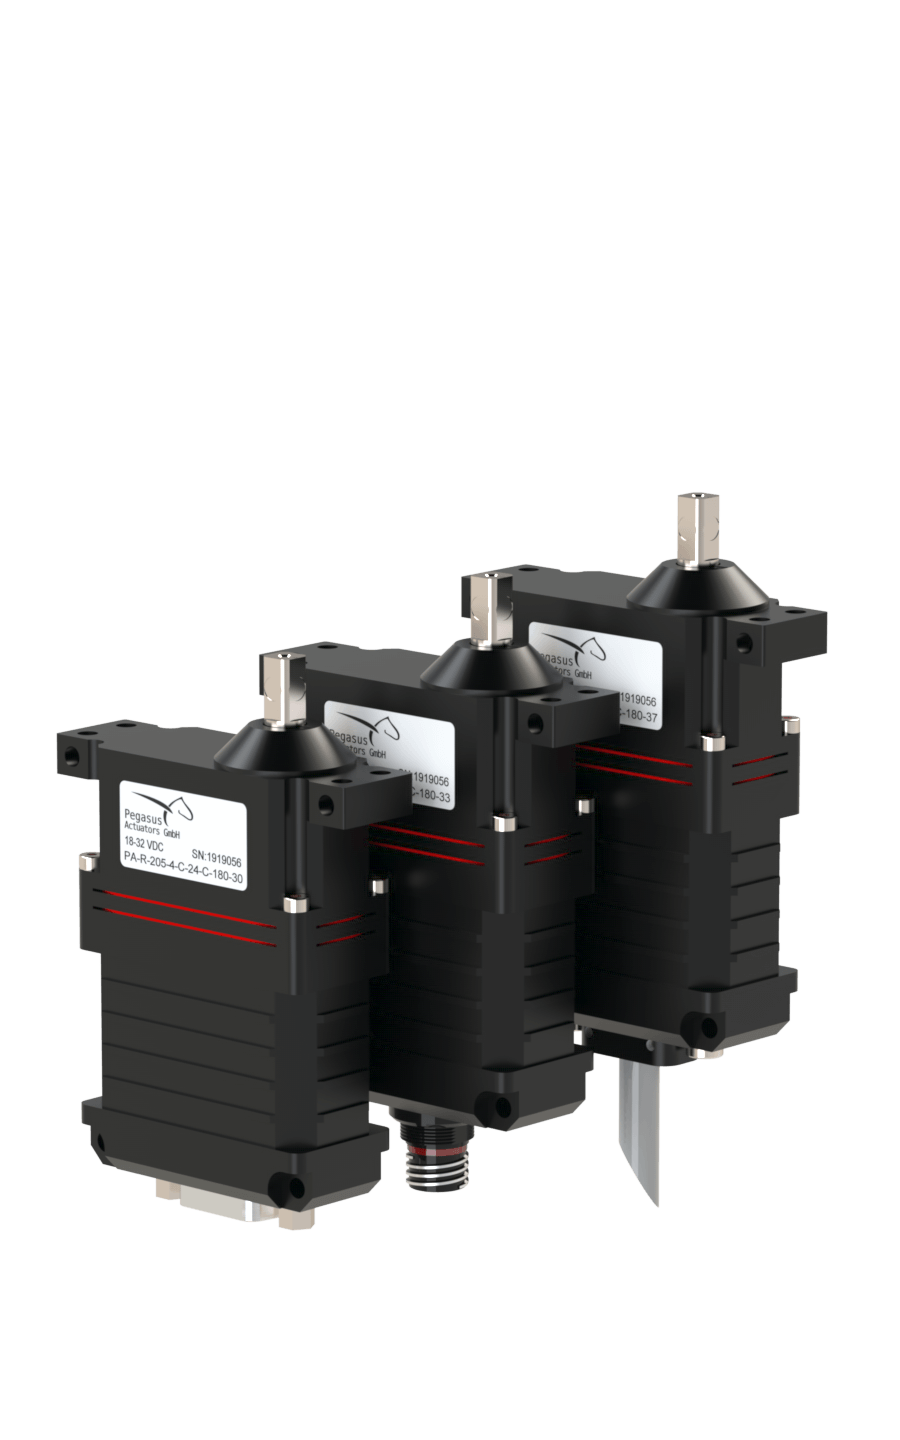 PA-R-205-4 Industrial Actuators